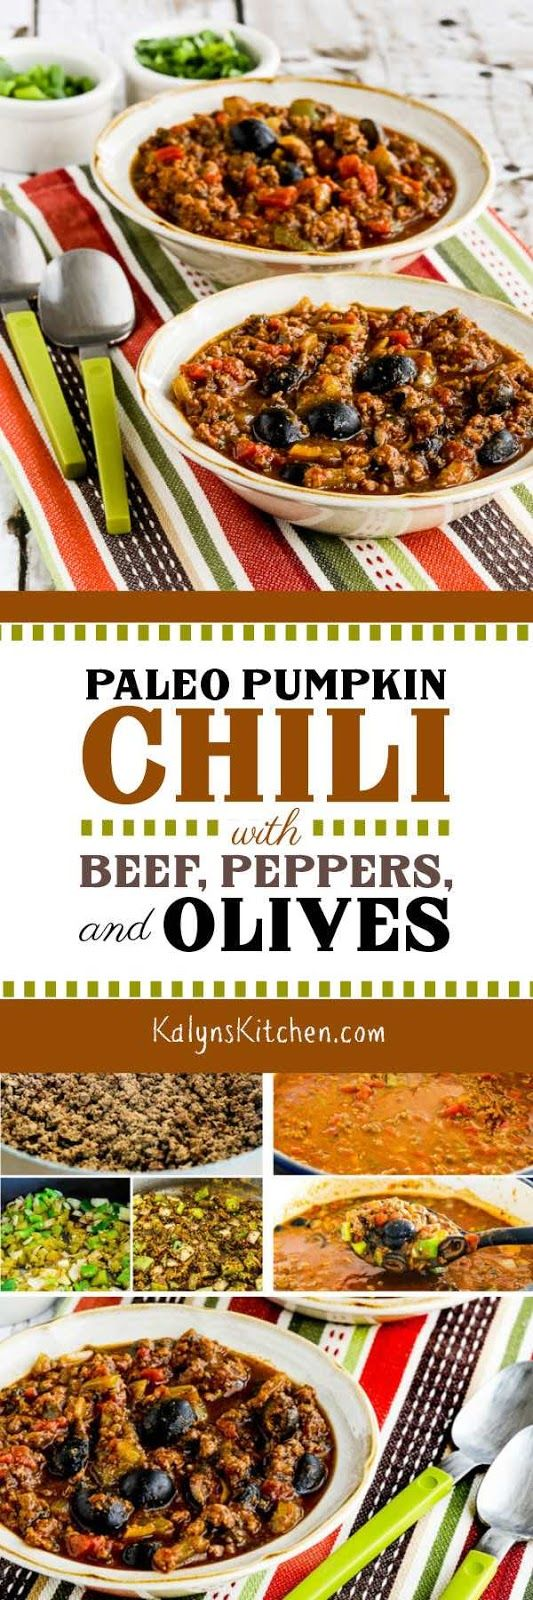 Paleo Pumpkin Chili with Beef, Peppers, and Olives (Video)